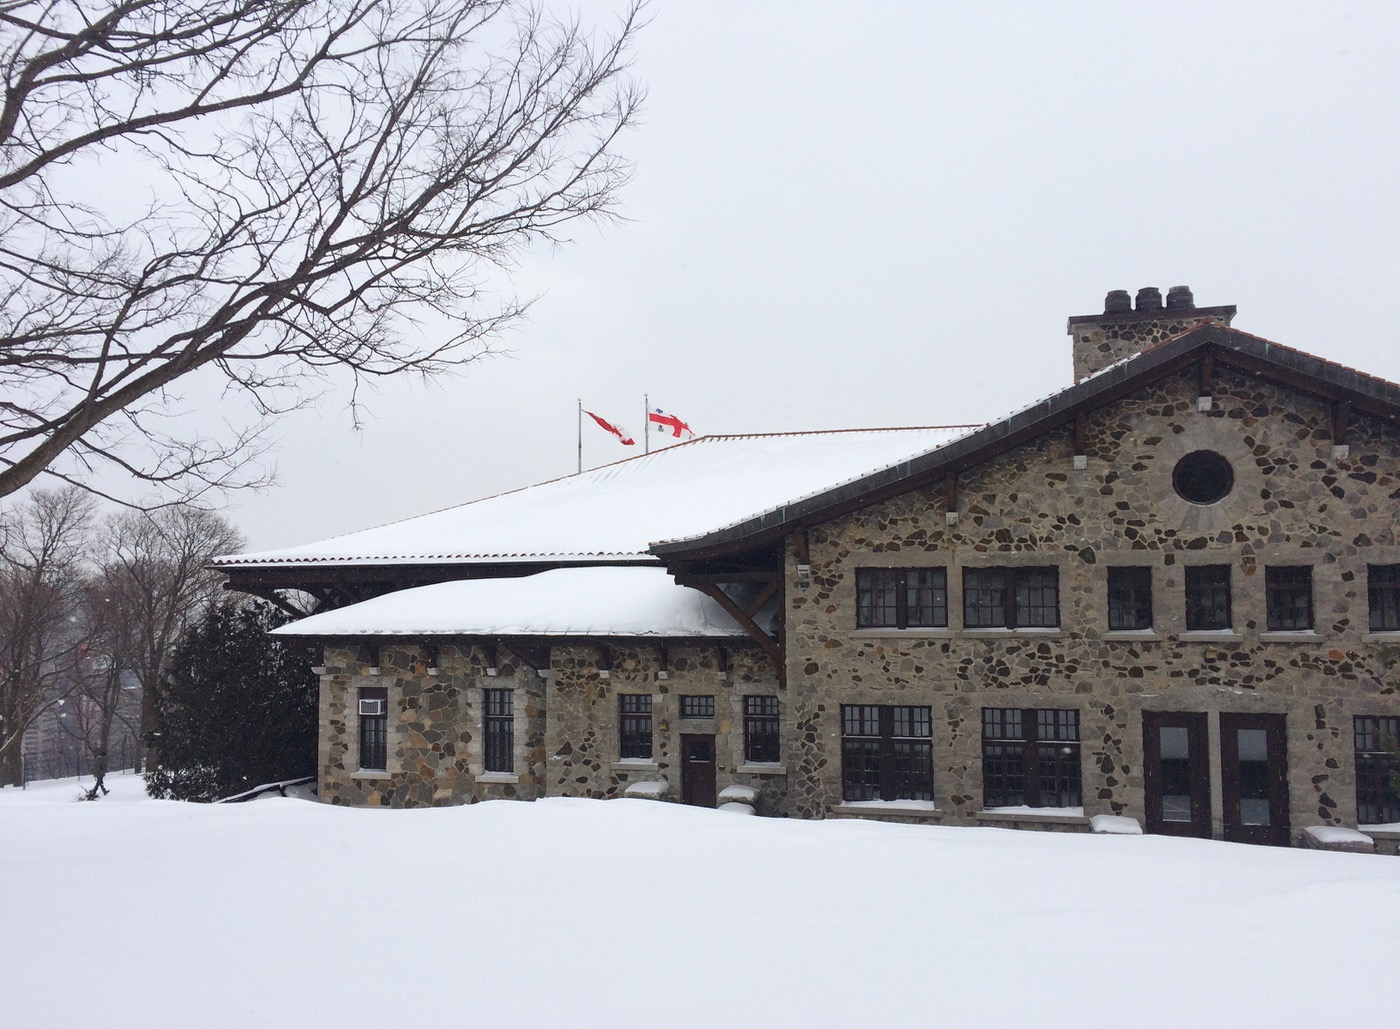 mont royal ski lodge